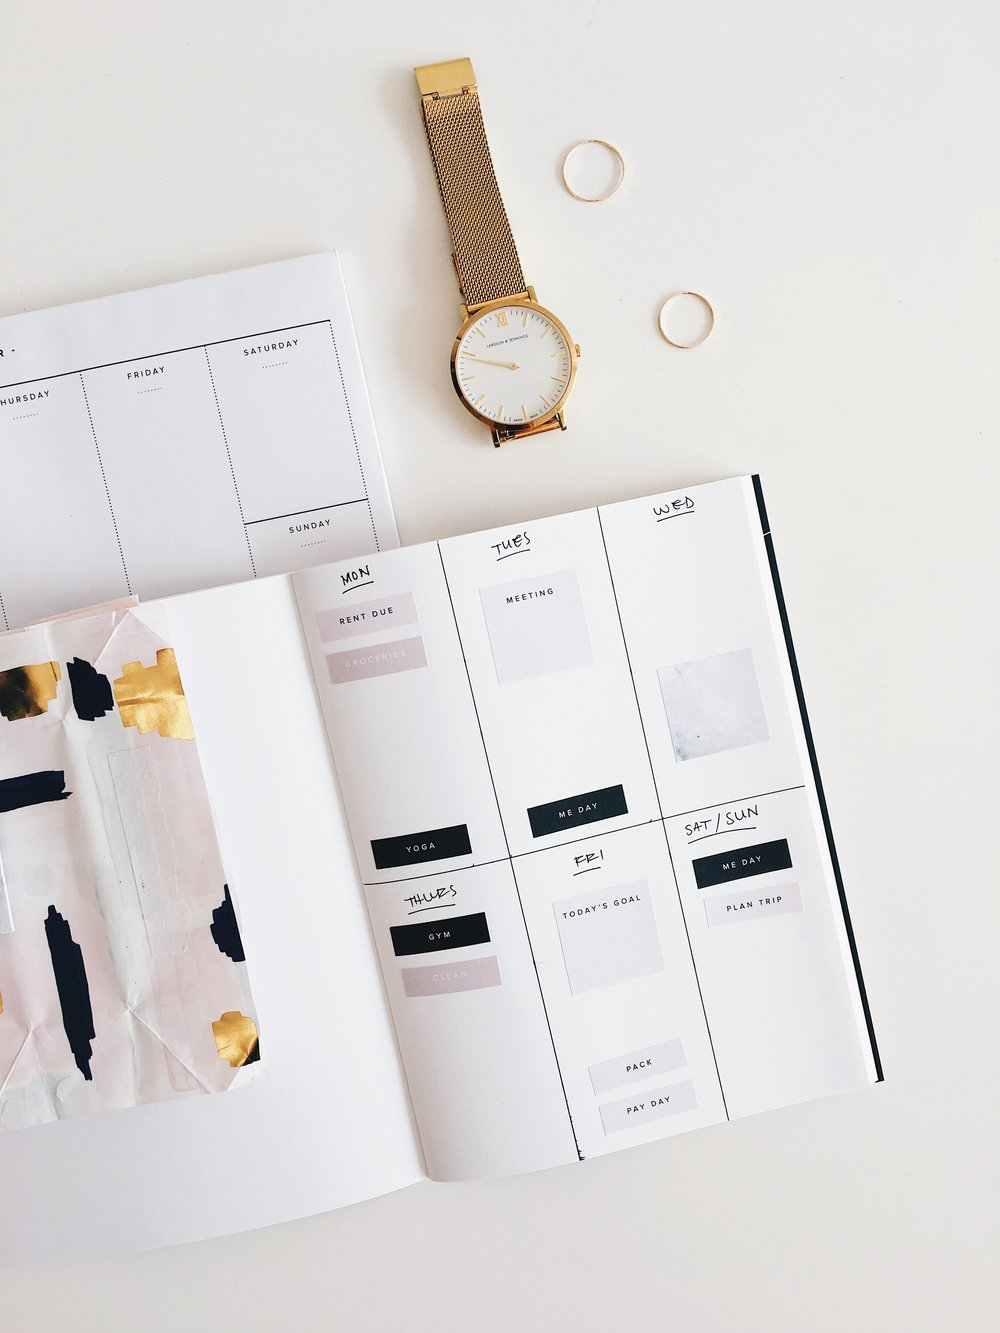 GROWTH STRATEGY OVERHAUL & MANAGEMENT FOR YOUR NEXT LAUNCH - These packages are reserved for the multi-passionate millennial female entrepreneur who's ready to fast-track growth and sales through the launch of her next business.$8,220 - $20,330